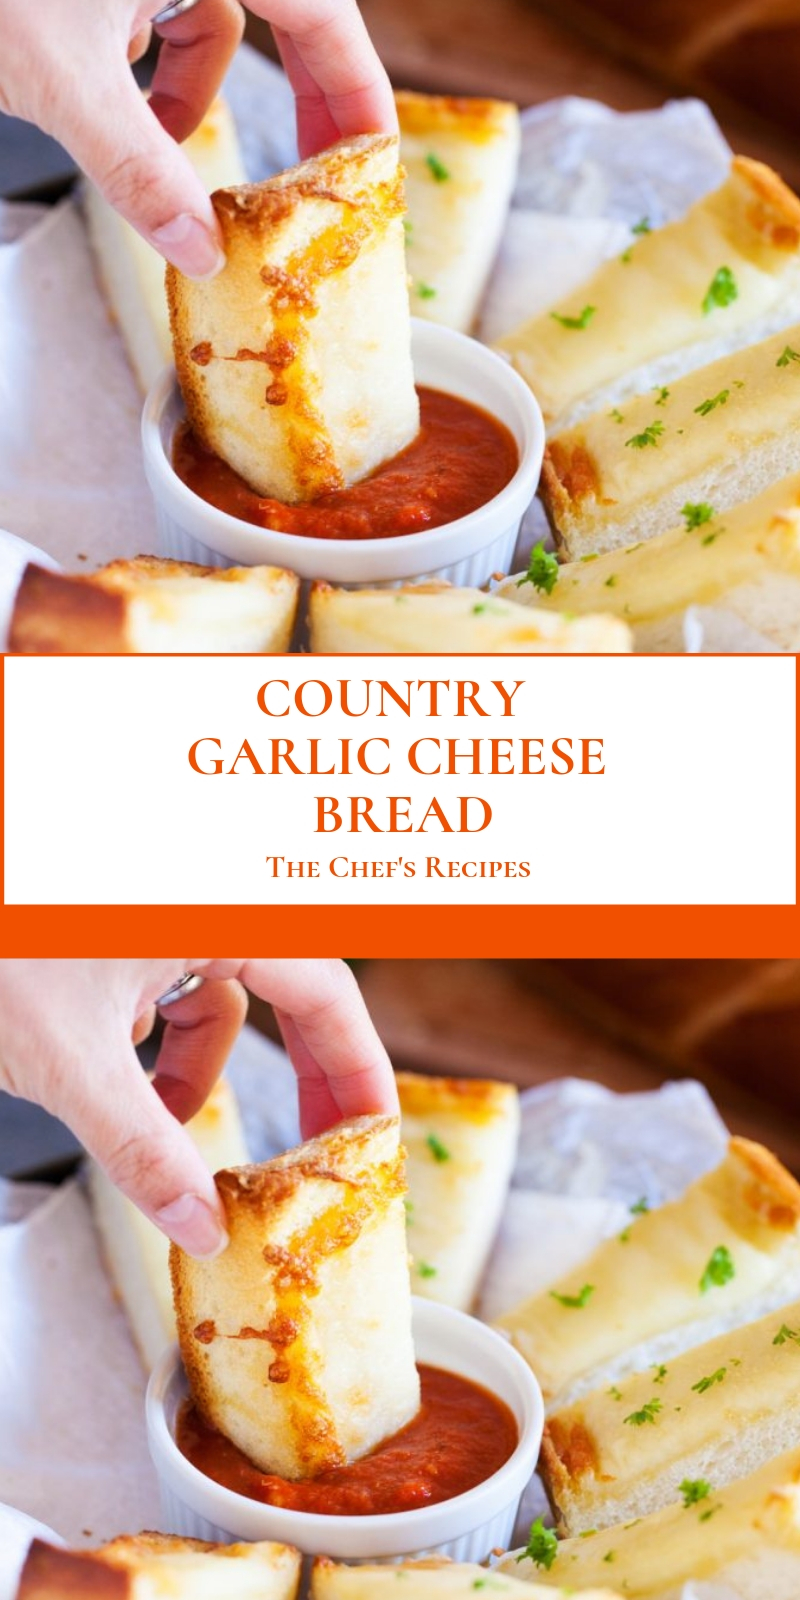 COUNTRY GARLIC CHEESE BREAD